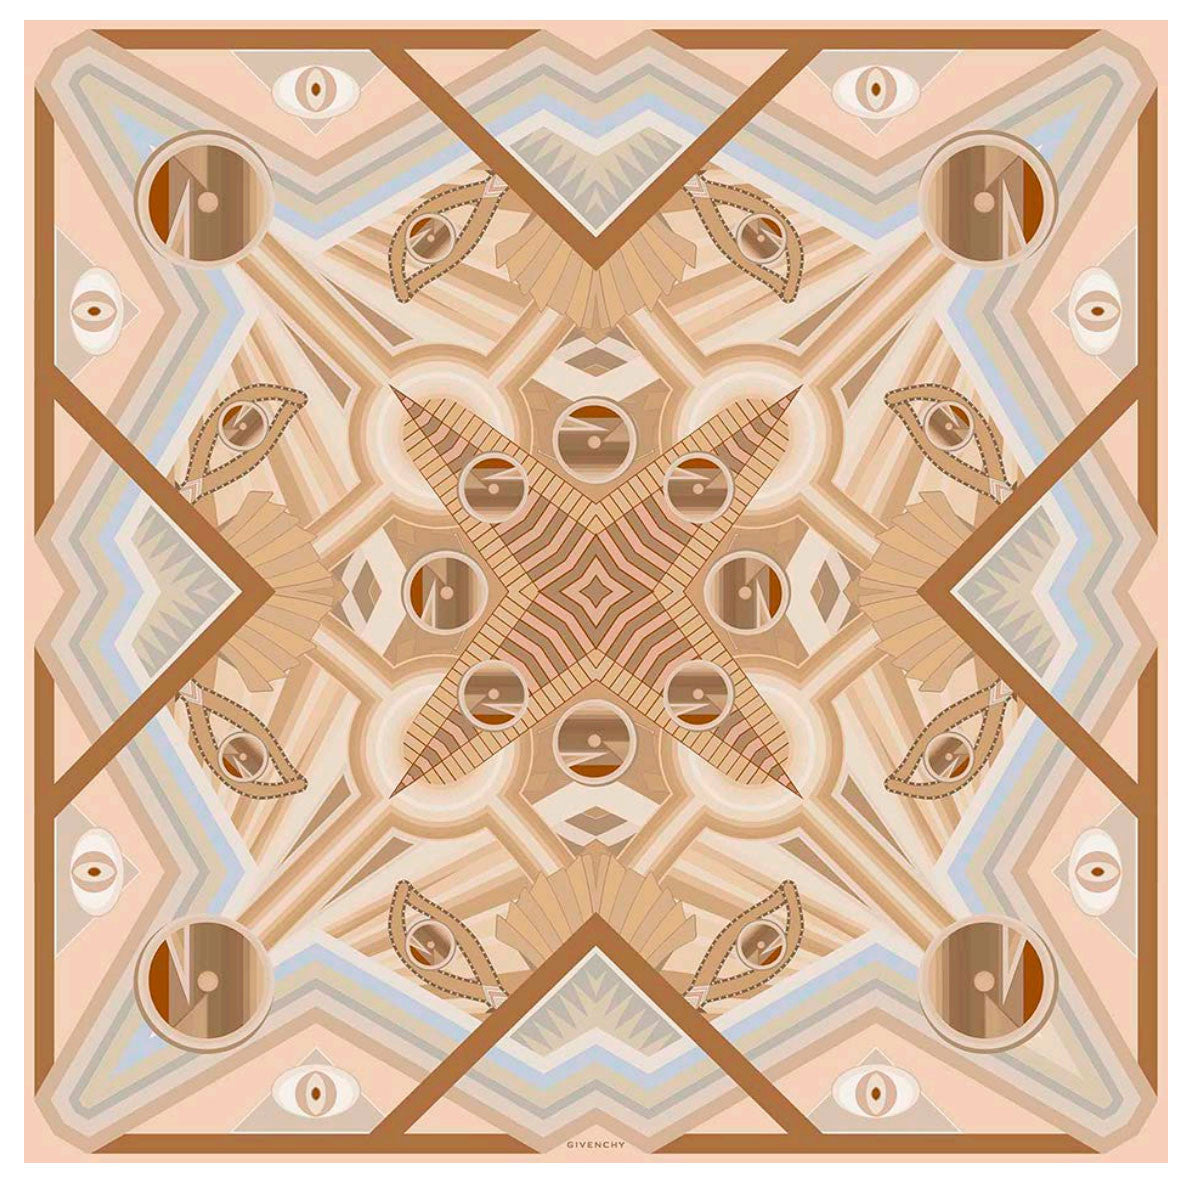 Givenchy Scarf Cream Pink Rosace X